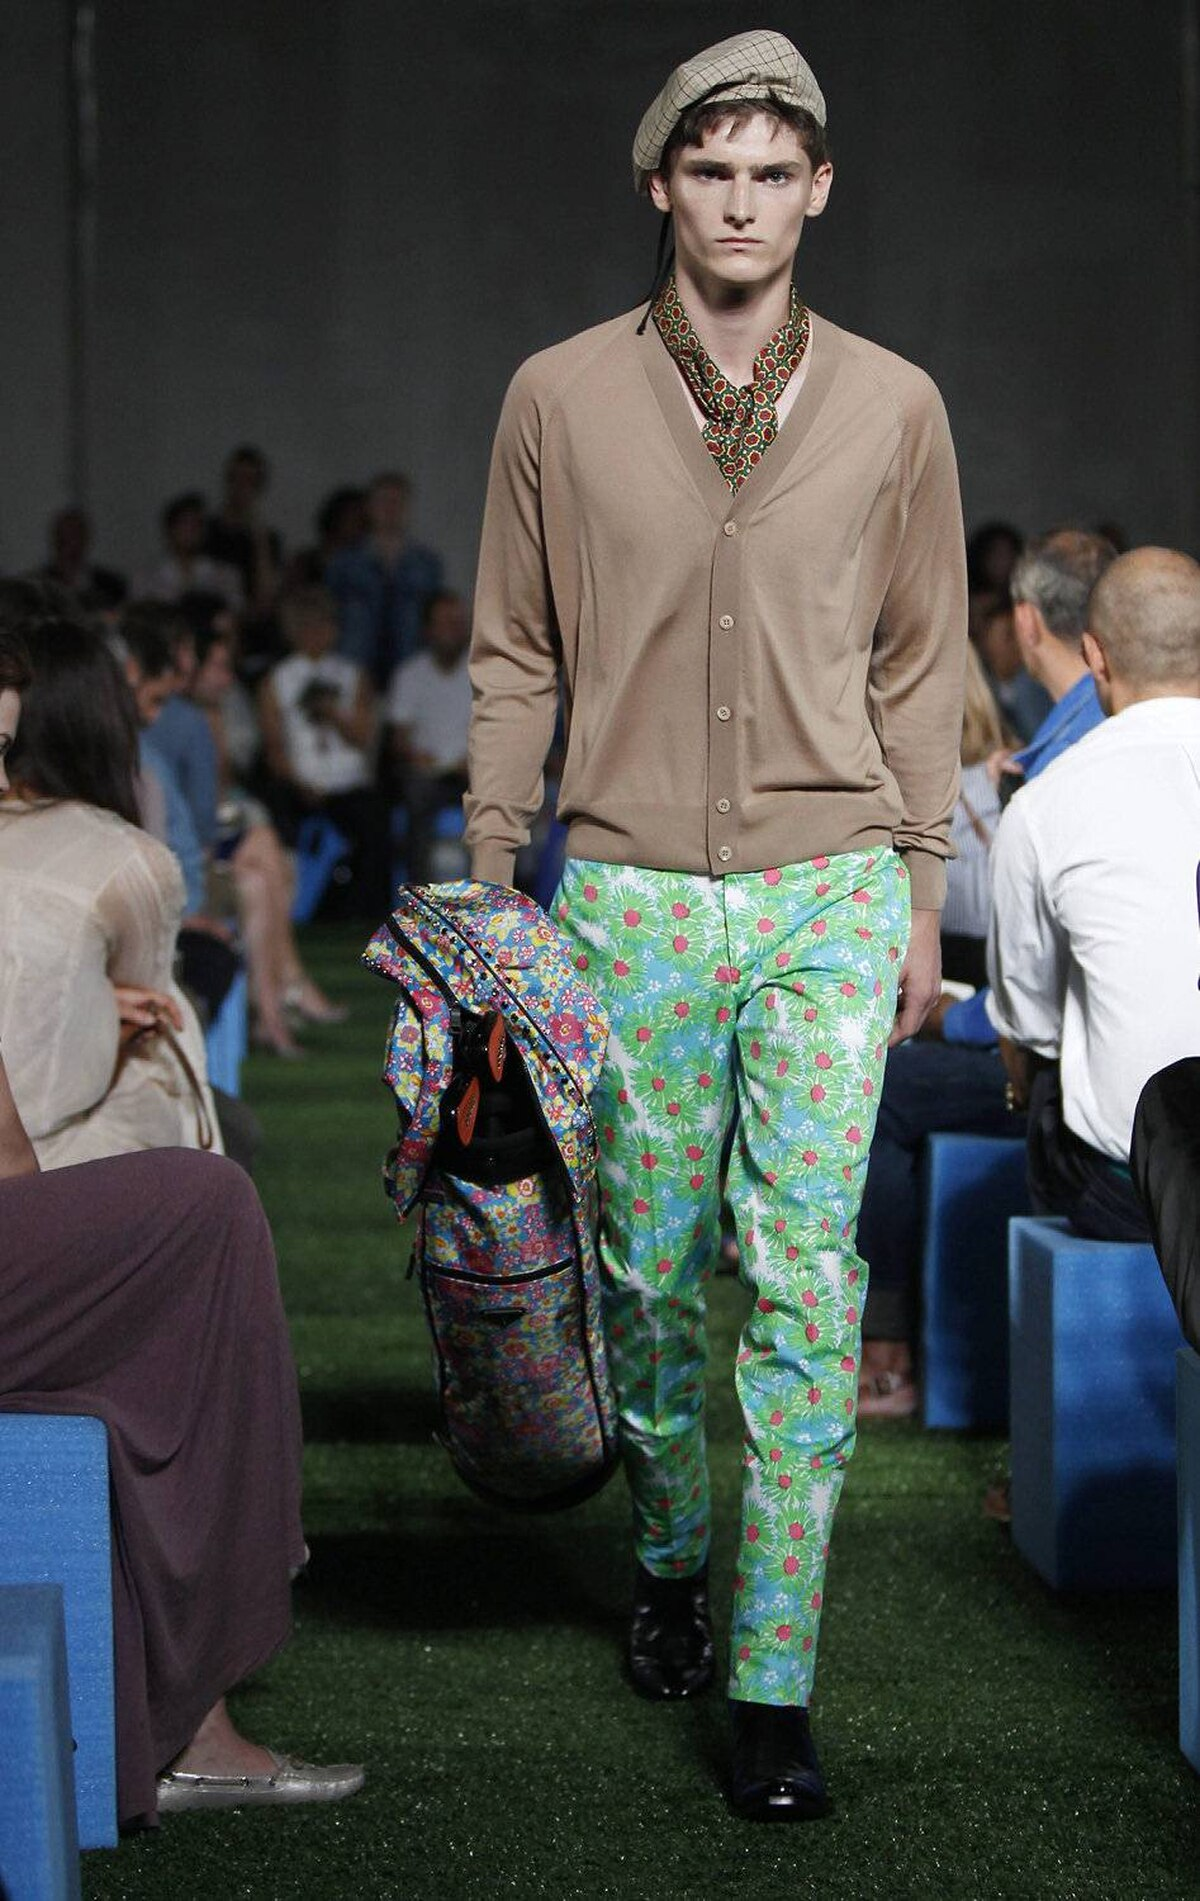 A model wears part of the Prada men's spring-summer 2012 collection in Milan, Italy, on Sunday, June 19, 2011.